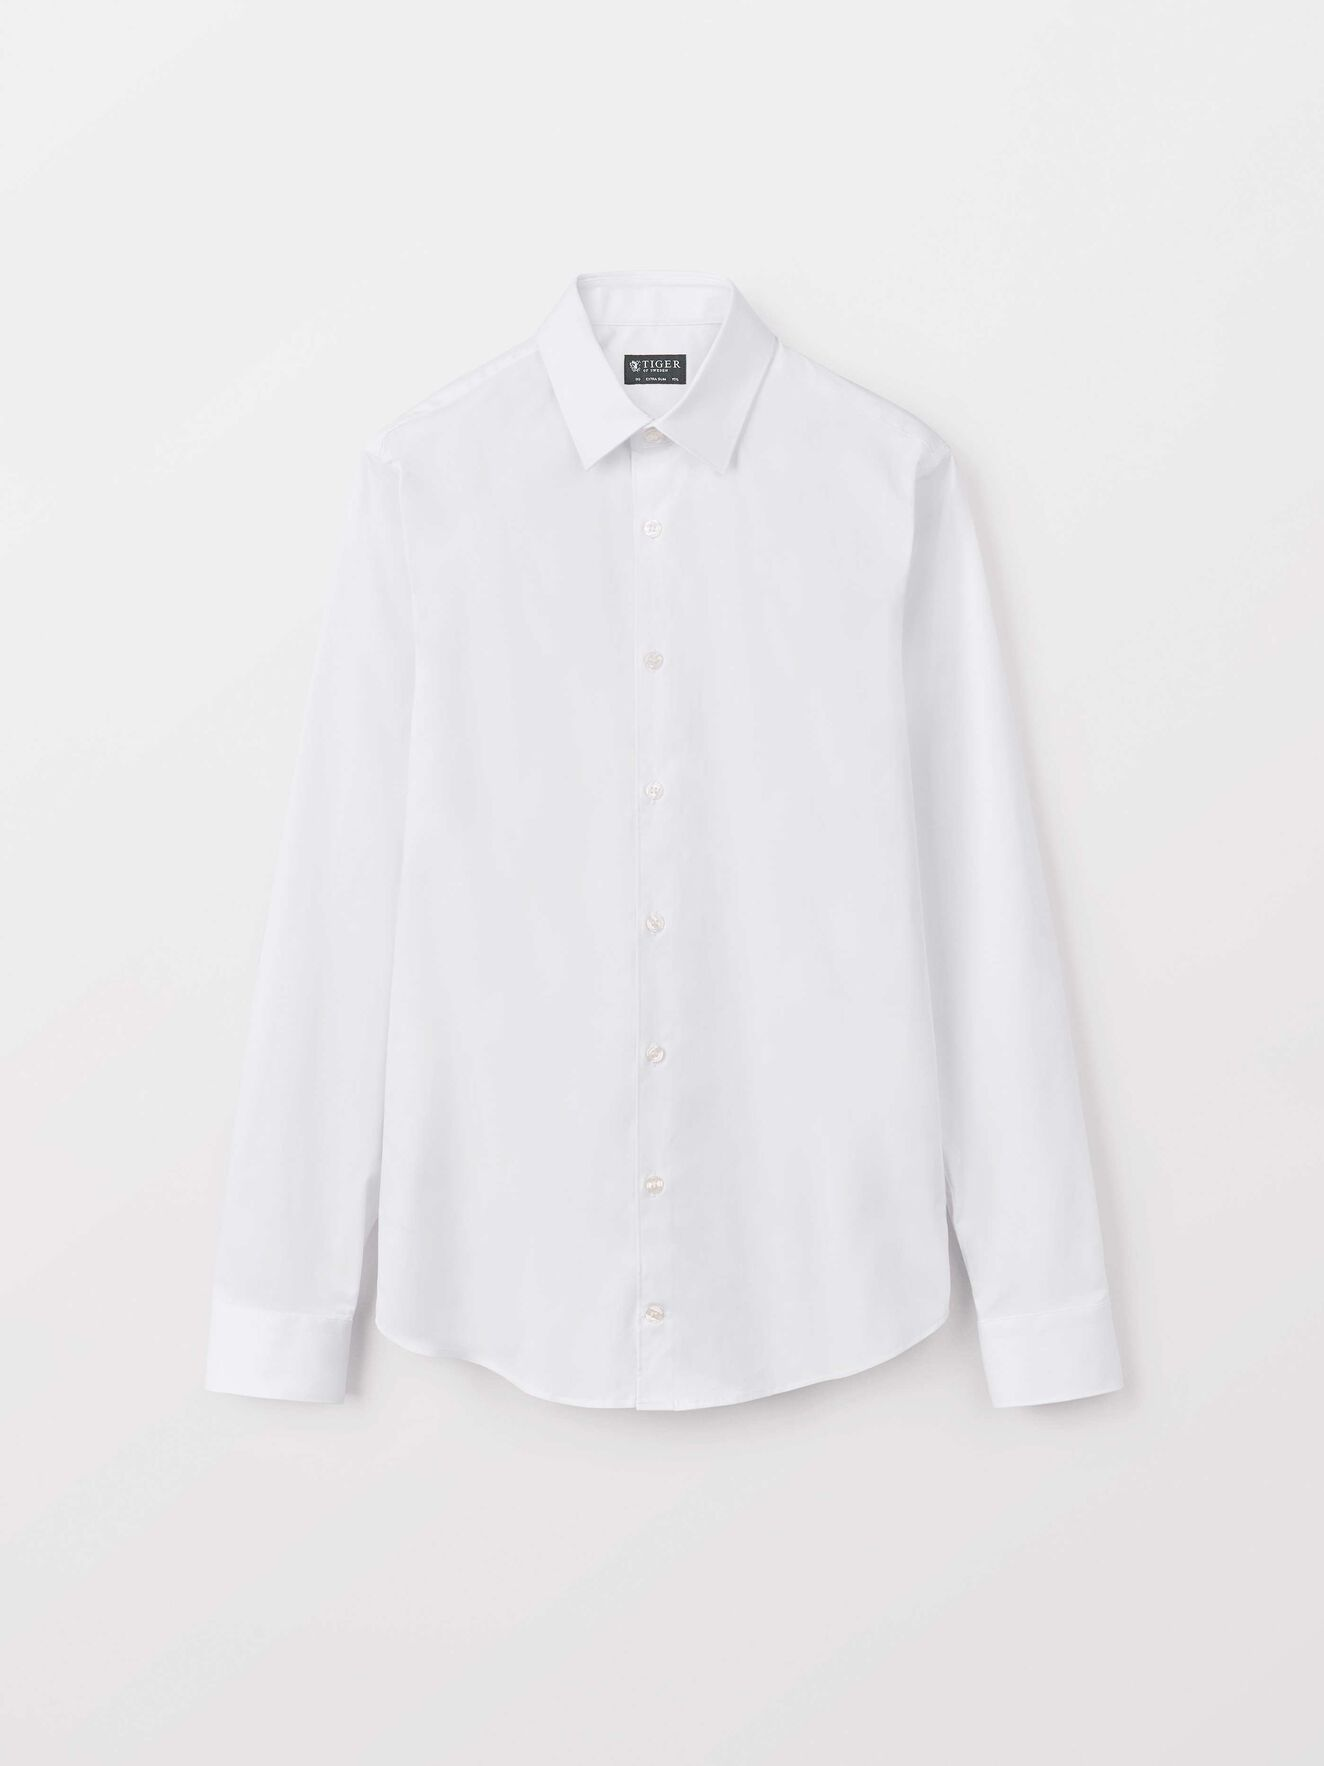 Filbrodie Shirt in Pure white from Tiger of Sweden